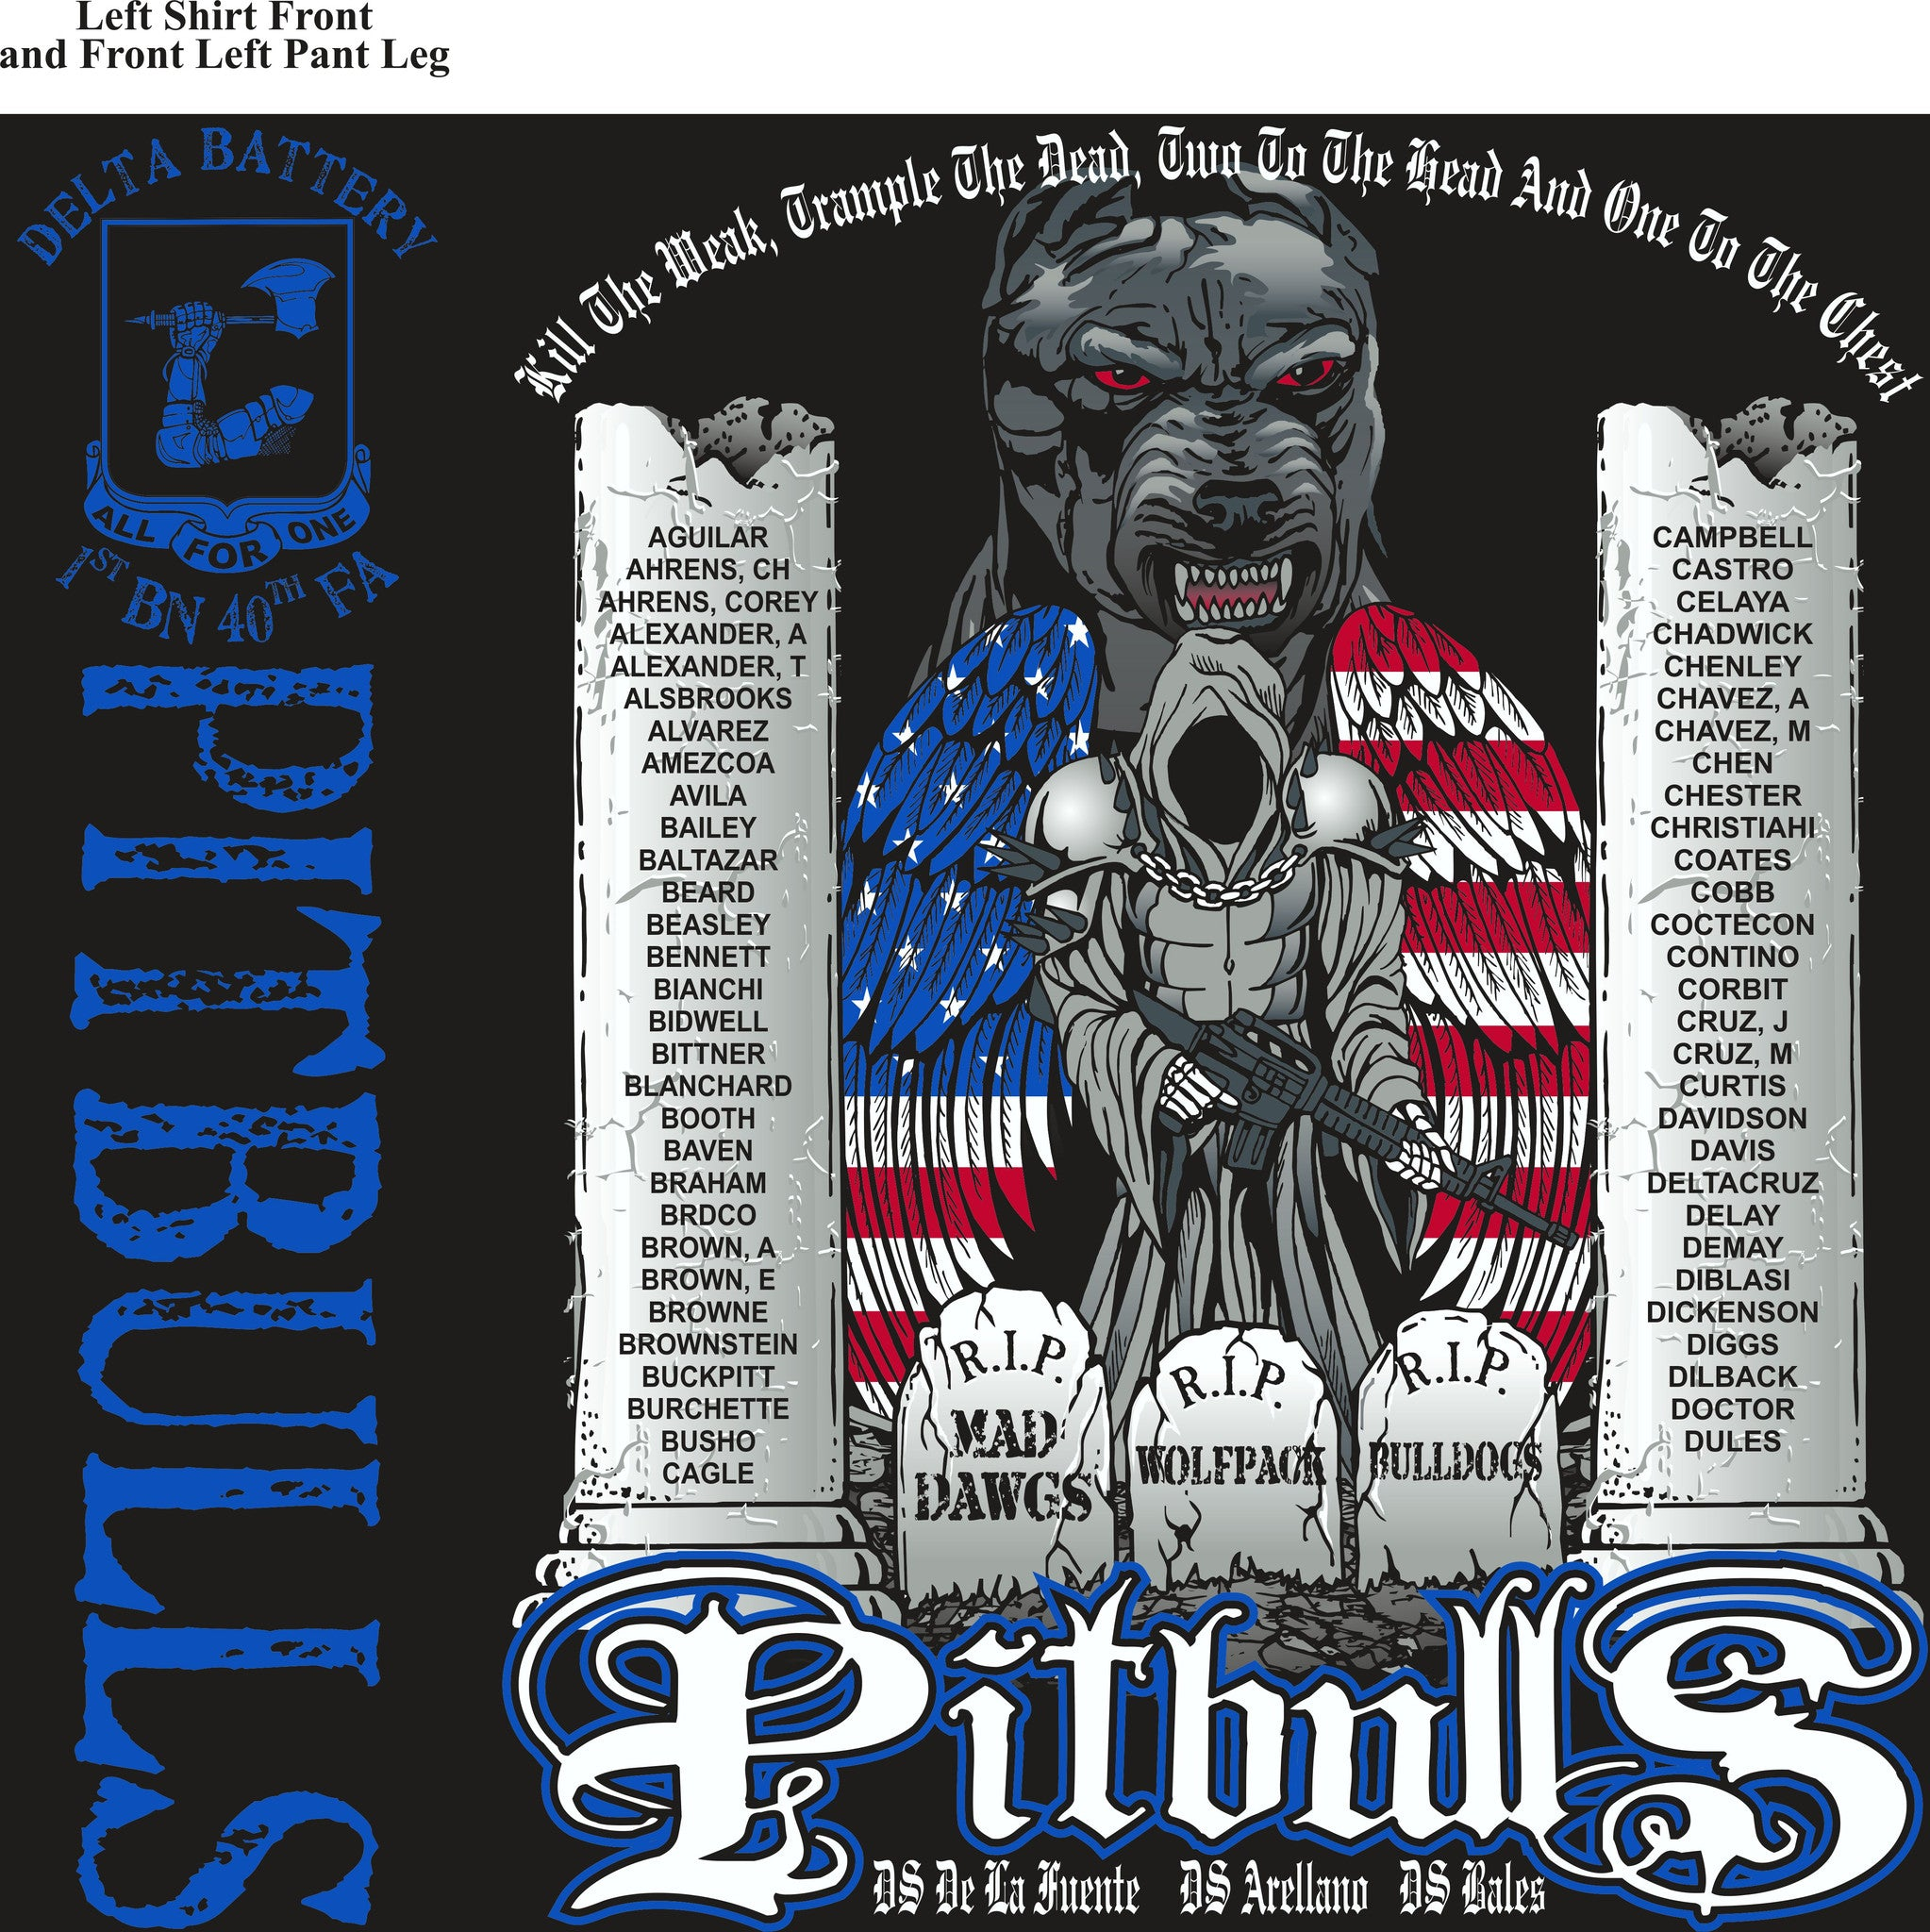 PLATOON SHIRTS (2nd generation print) DELTA 1st 40th PITBULLS SEPT 2016